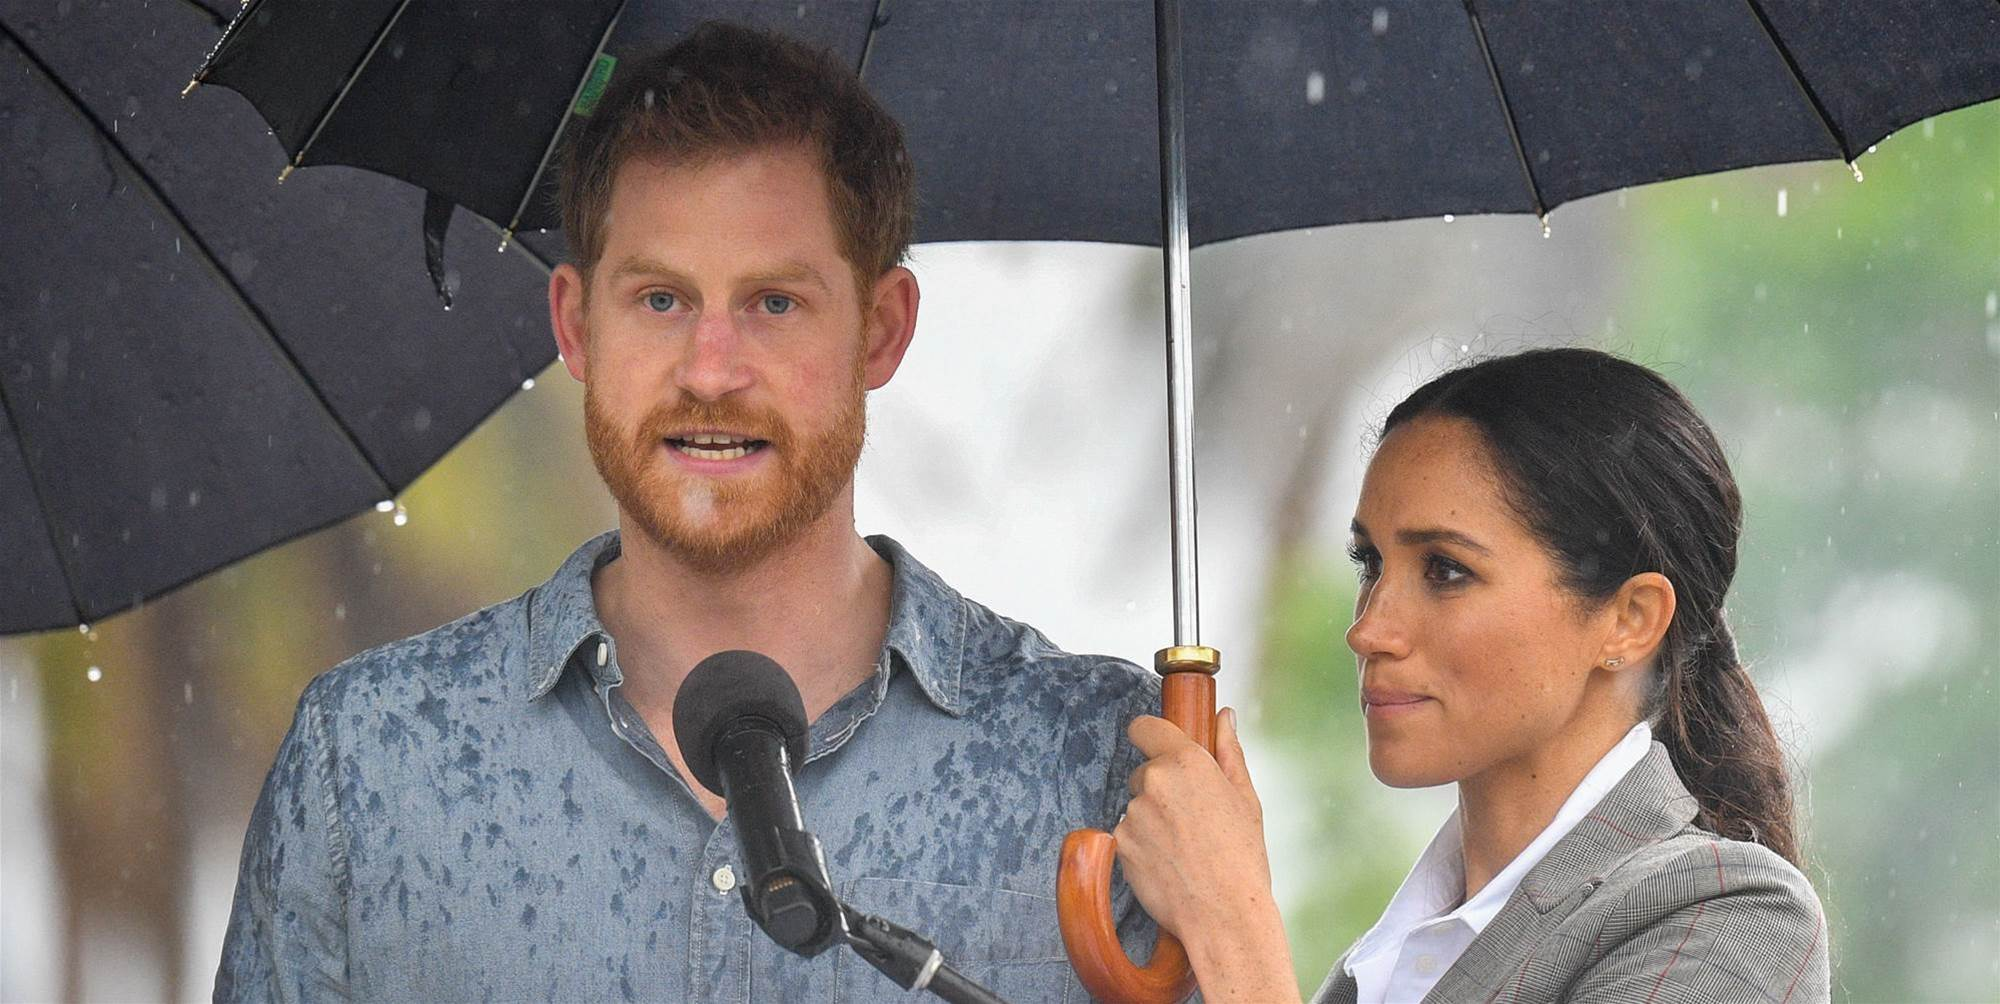 Prince Harry Opens Up About His Mental Health on Royal Visit to Australia